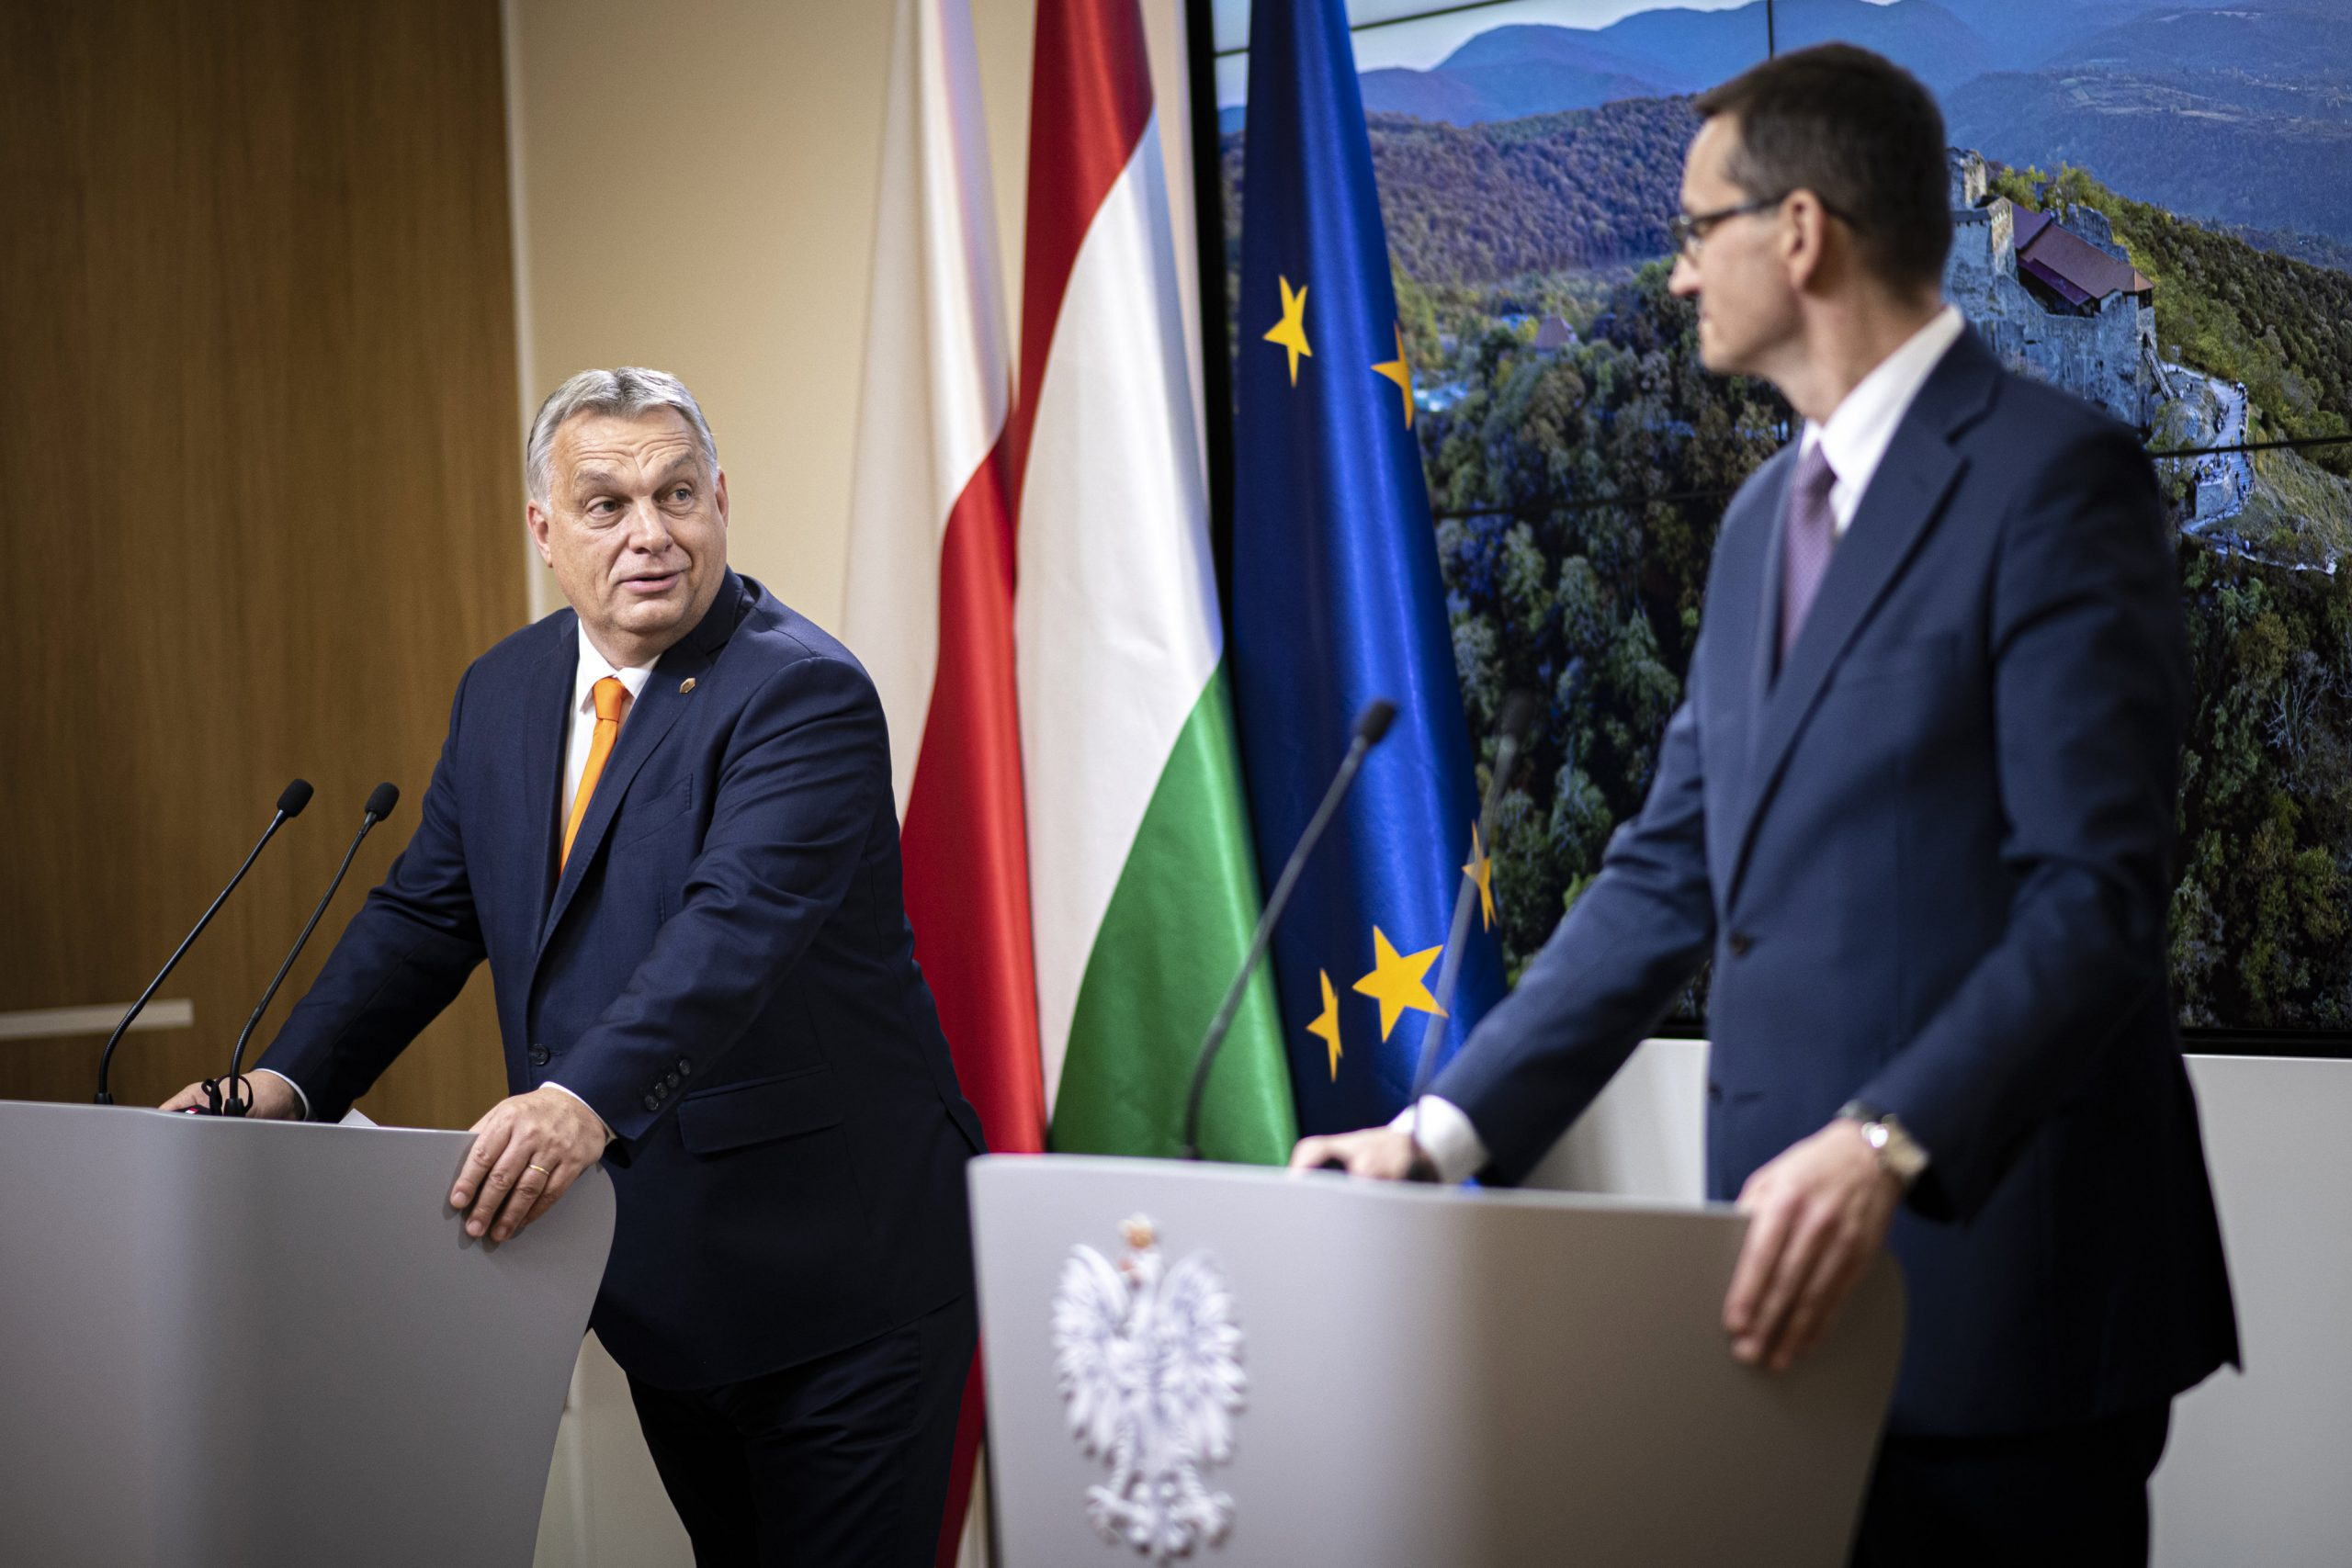 Fidesz: Victory in Brussels Against 'Imperial Endeavors,' Opposition: Deal is Orbán's Failure